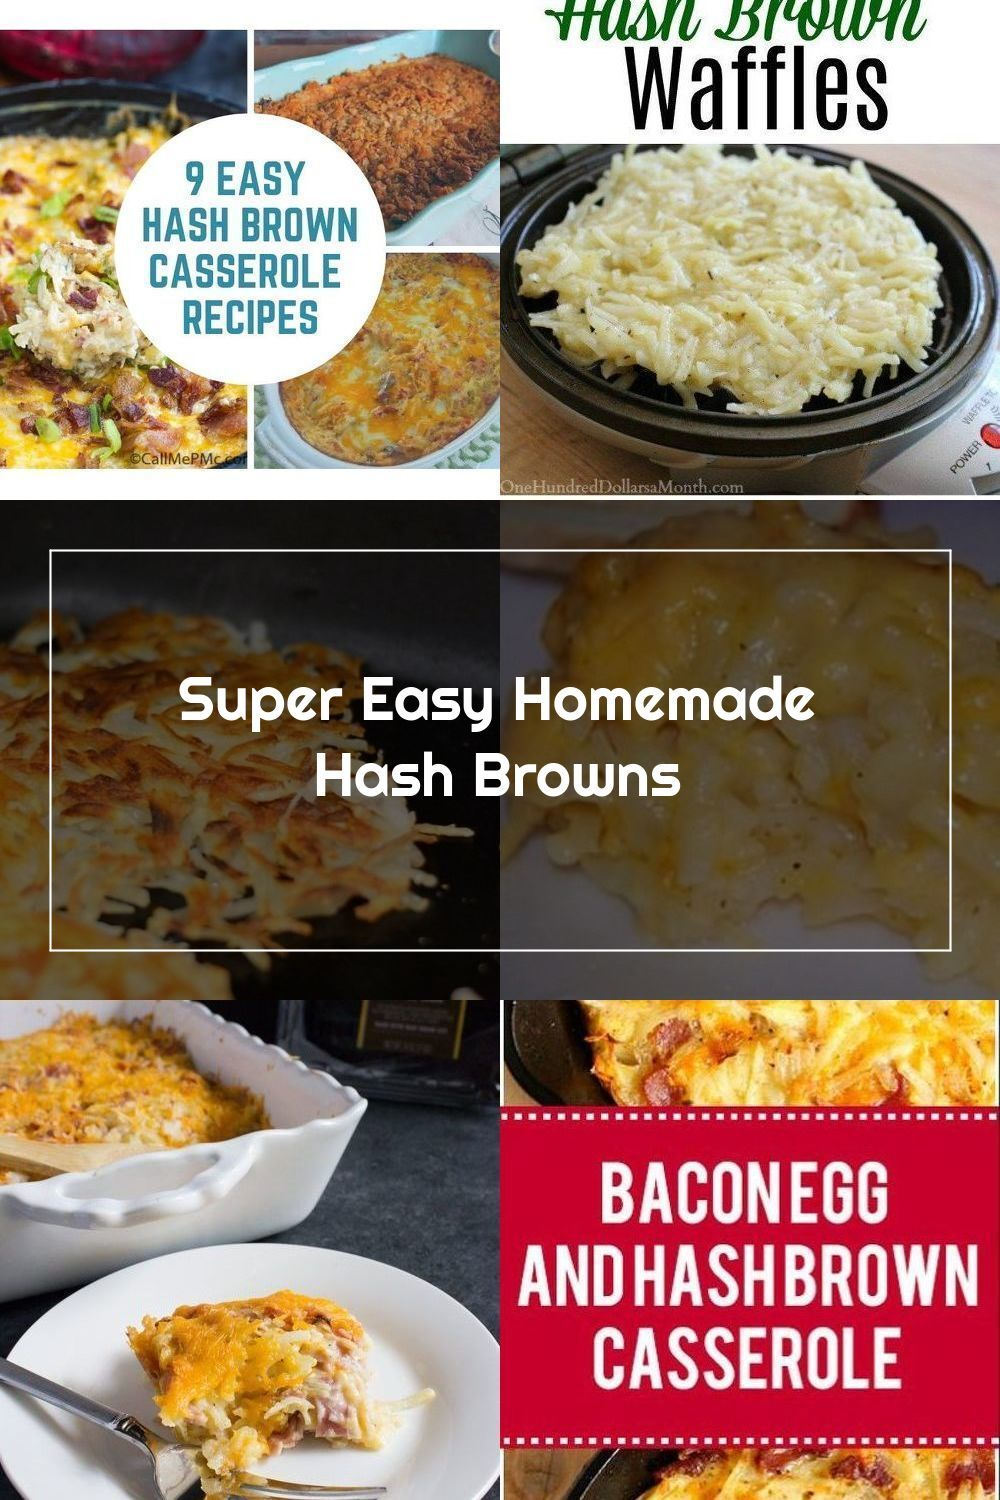 This Recipe Is Super Easy For Homemade Hash Browns You Only Need Potatoes